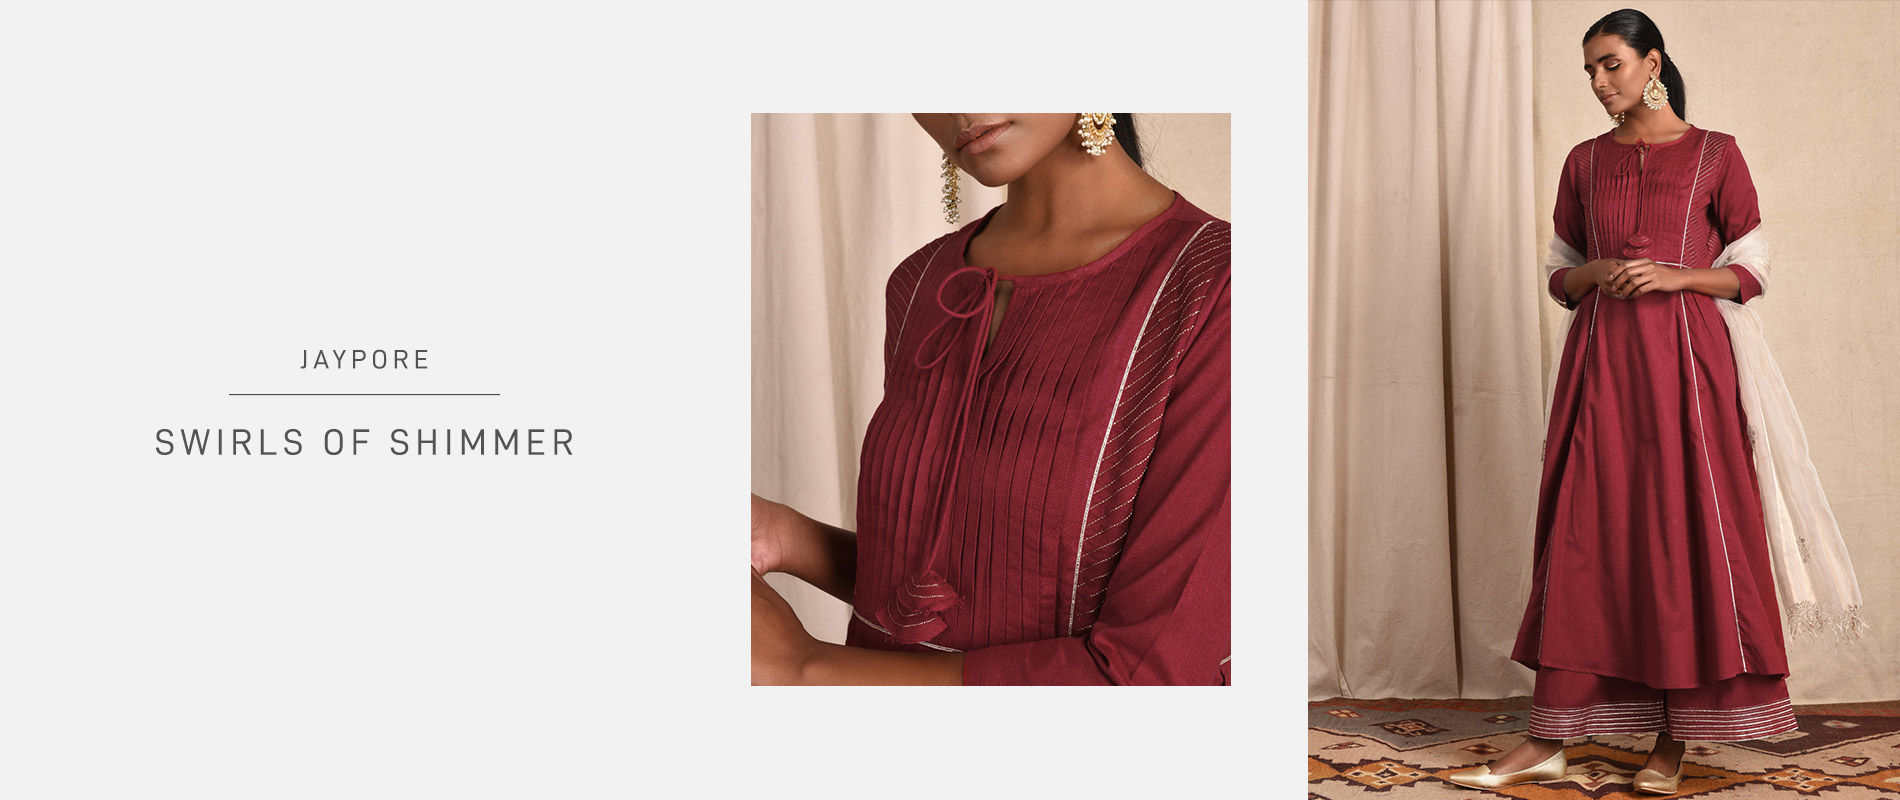 Jaypore Com Curated Online Shop For Handpicked Products Vintage